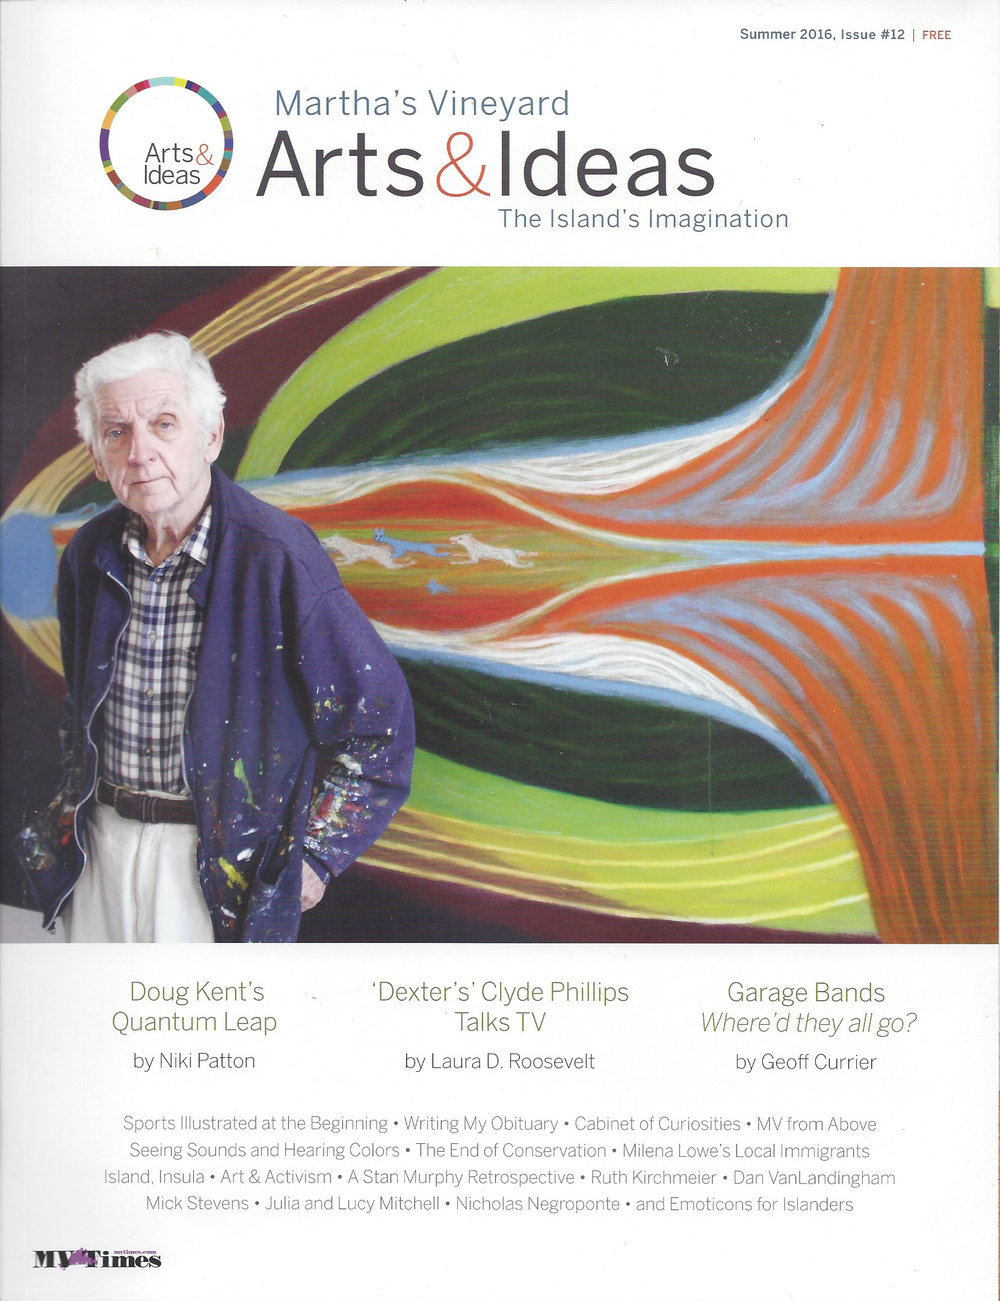 marthas_vineyard_arts_and_ideas_magazine_by_mv_times_about_local_immigrants_project_by_mila_lowe_cover.jpg